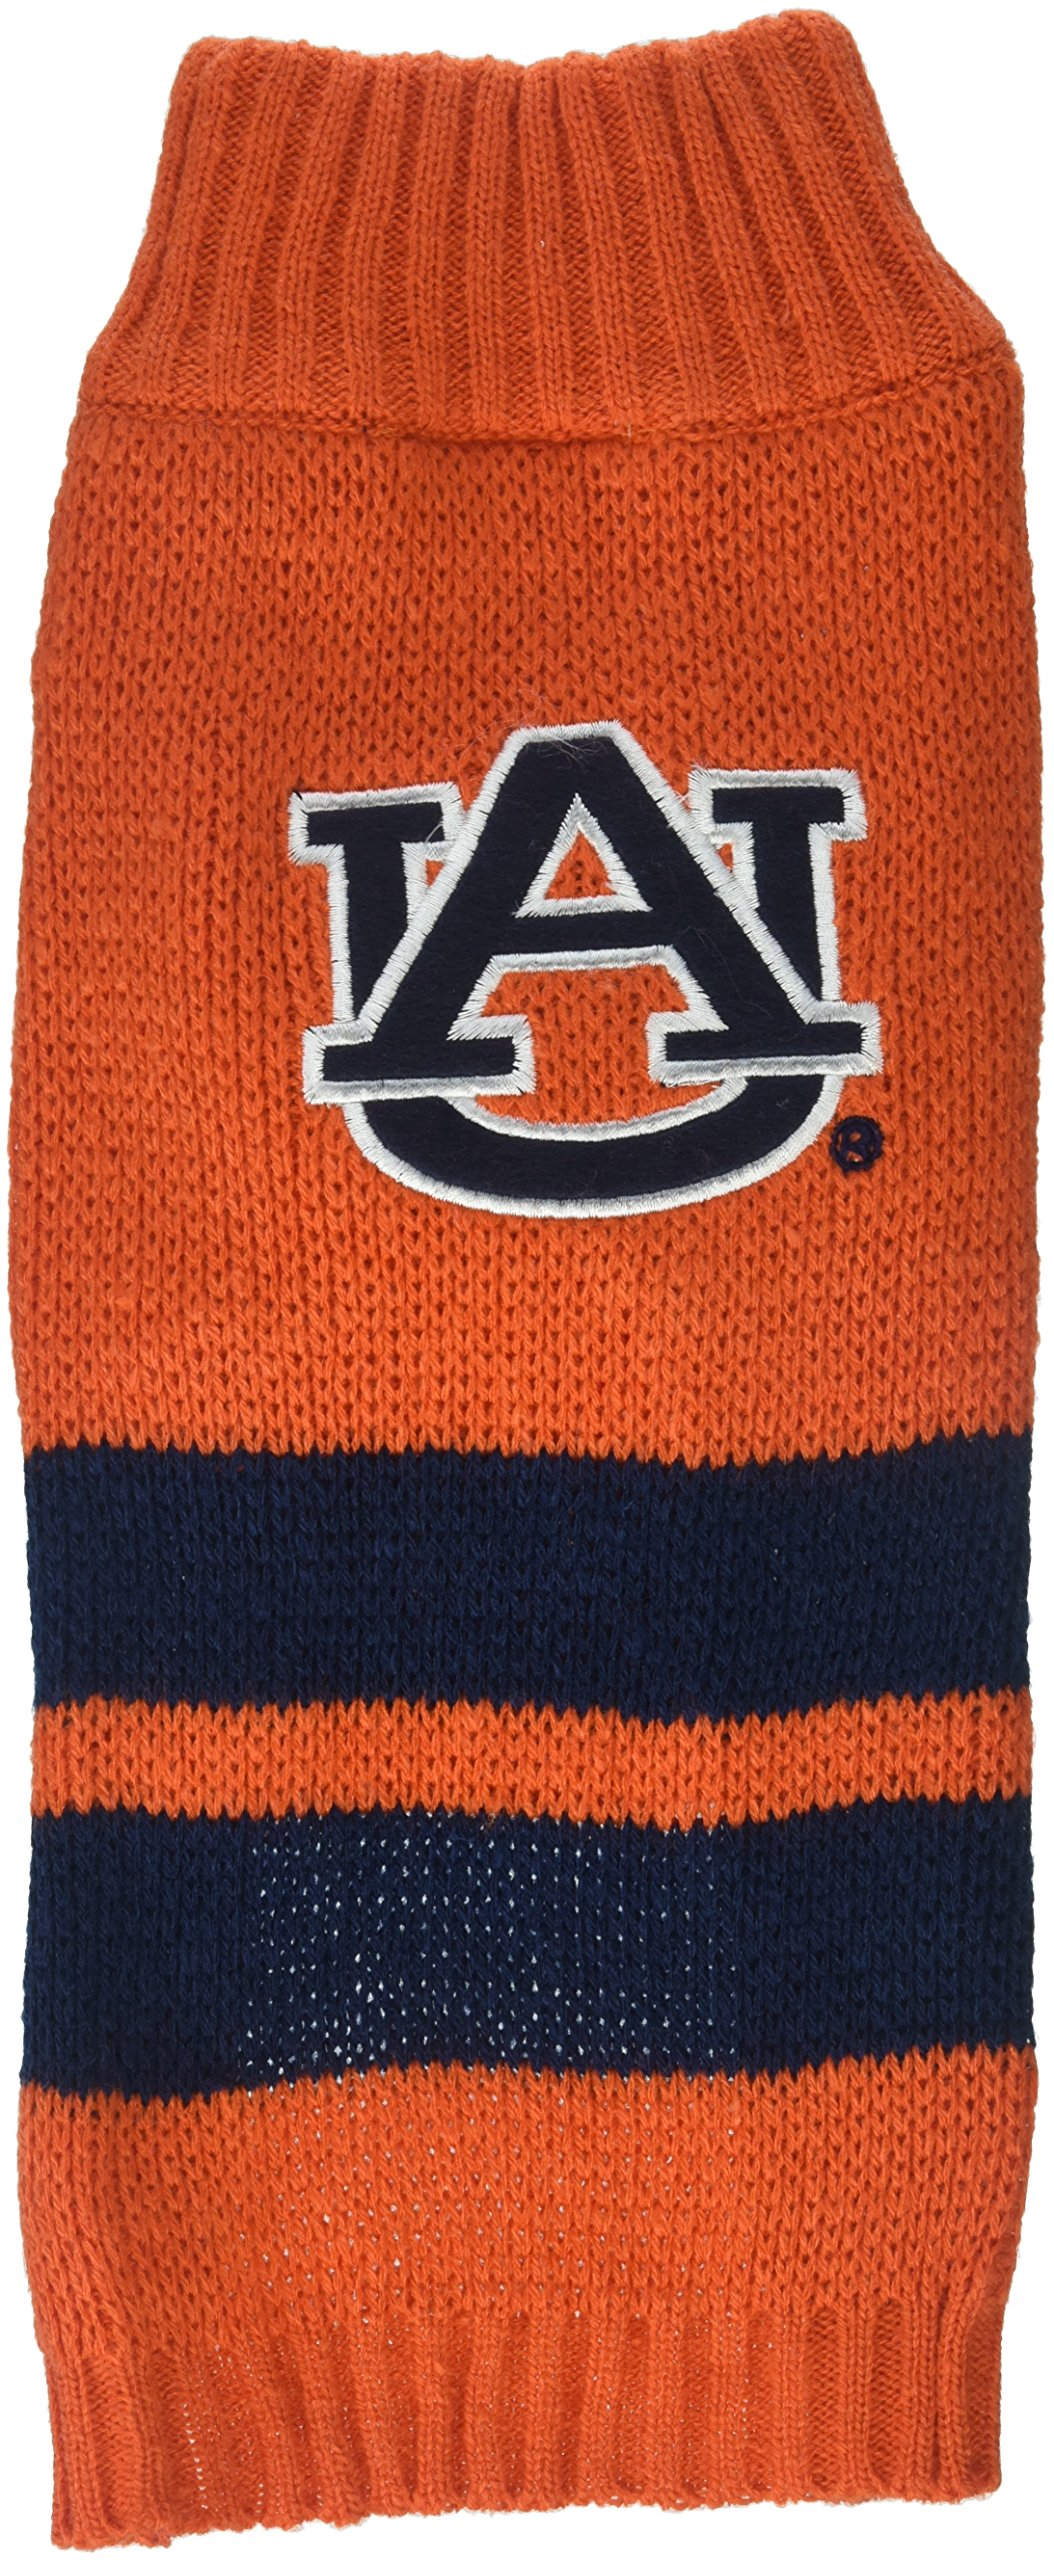 Pets First Collegiate Auburn Tigers Pet Sweater, Small by Pets First